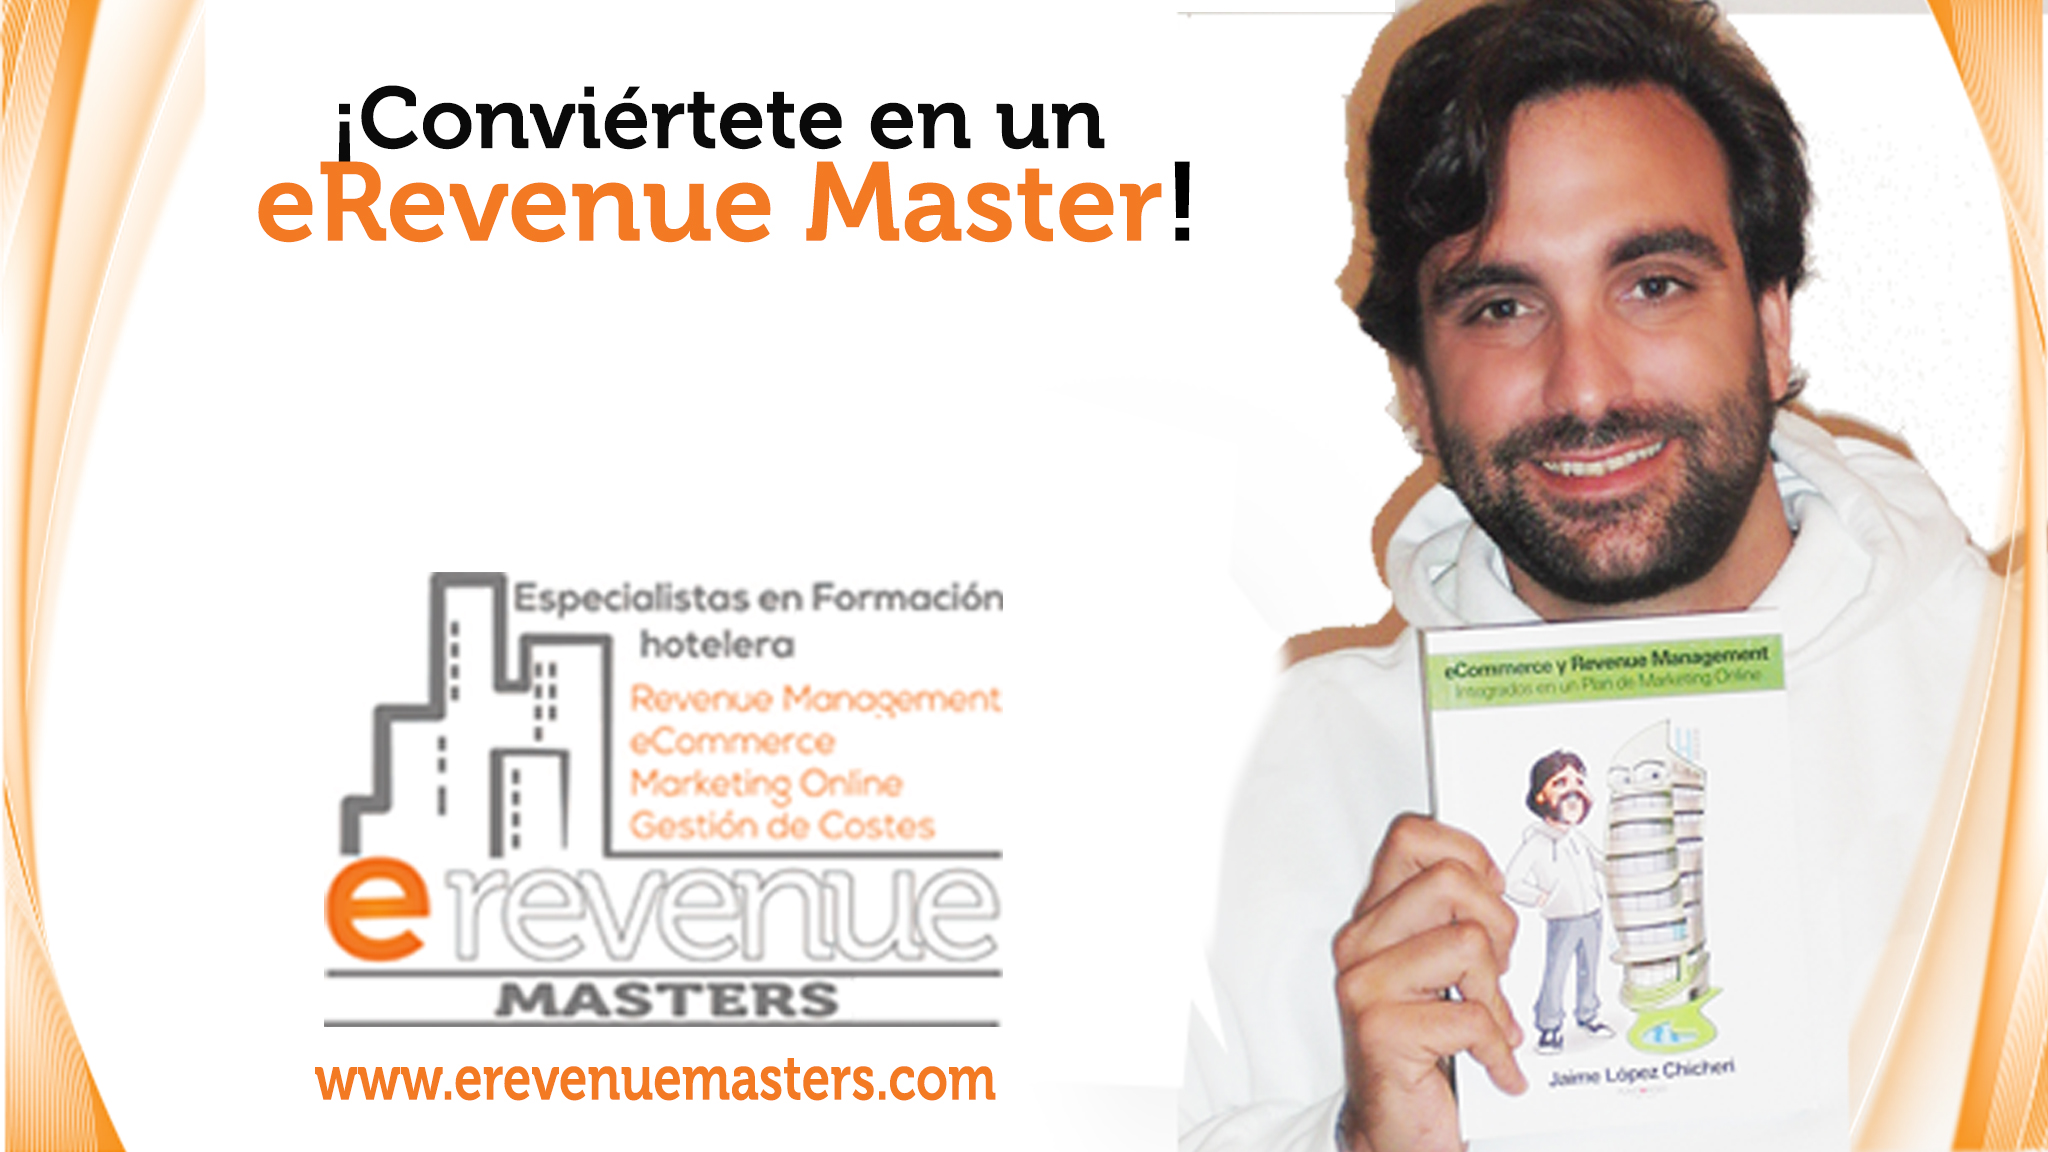 eRevenue Masters - escuela de negocios revenue management, e commerce y marketing online para hoteles